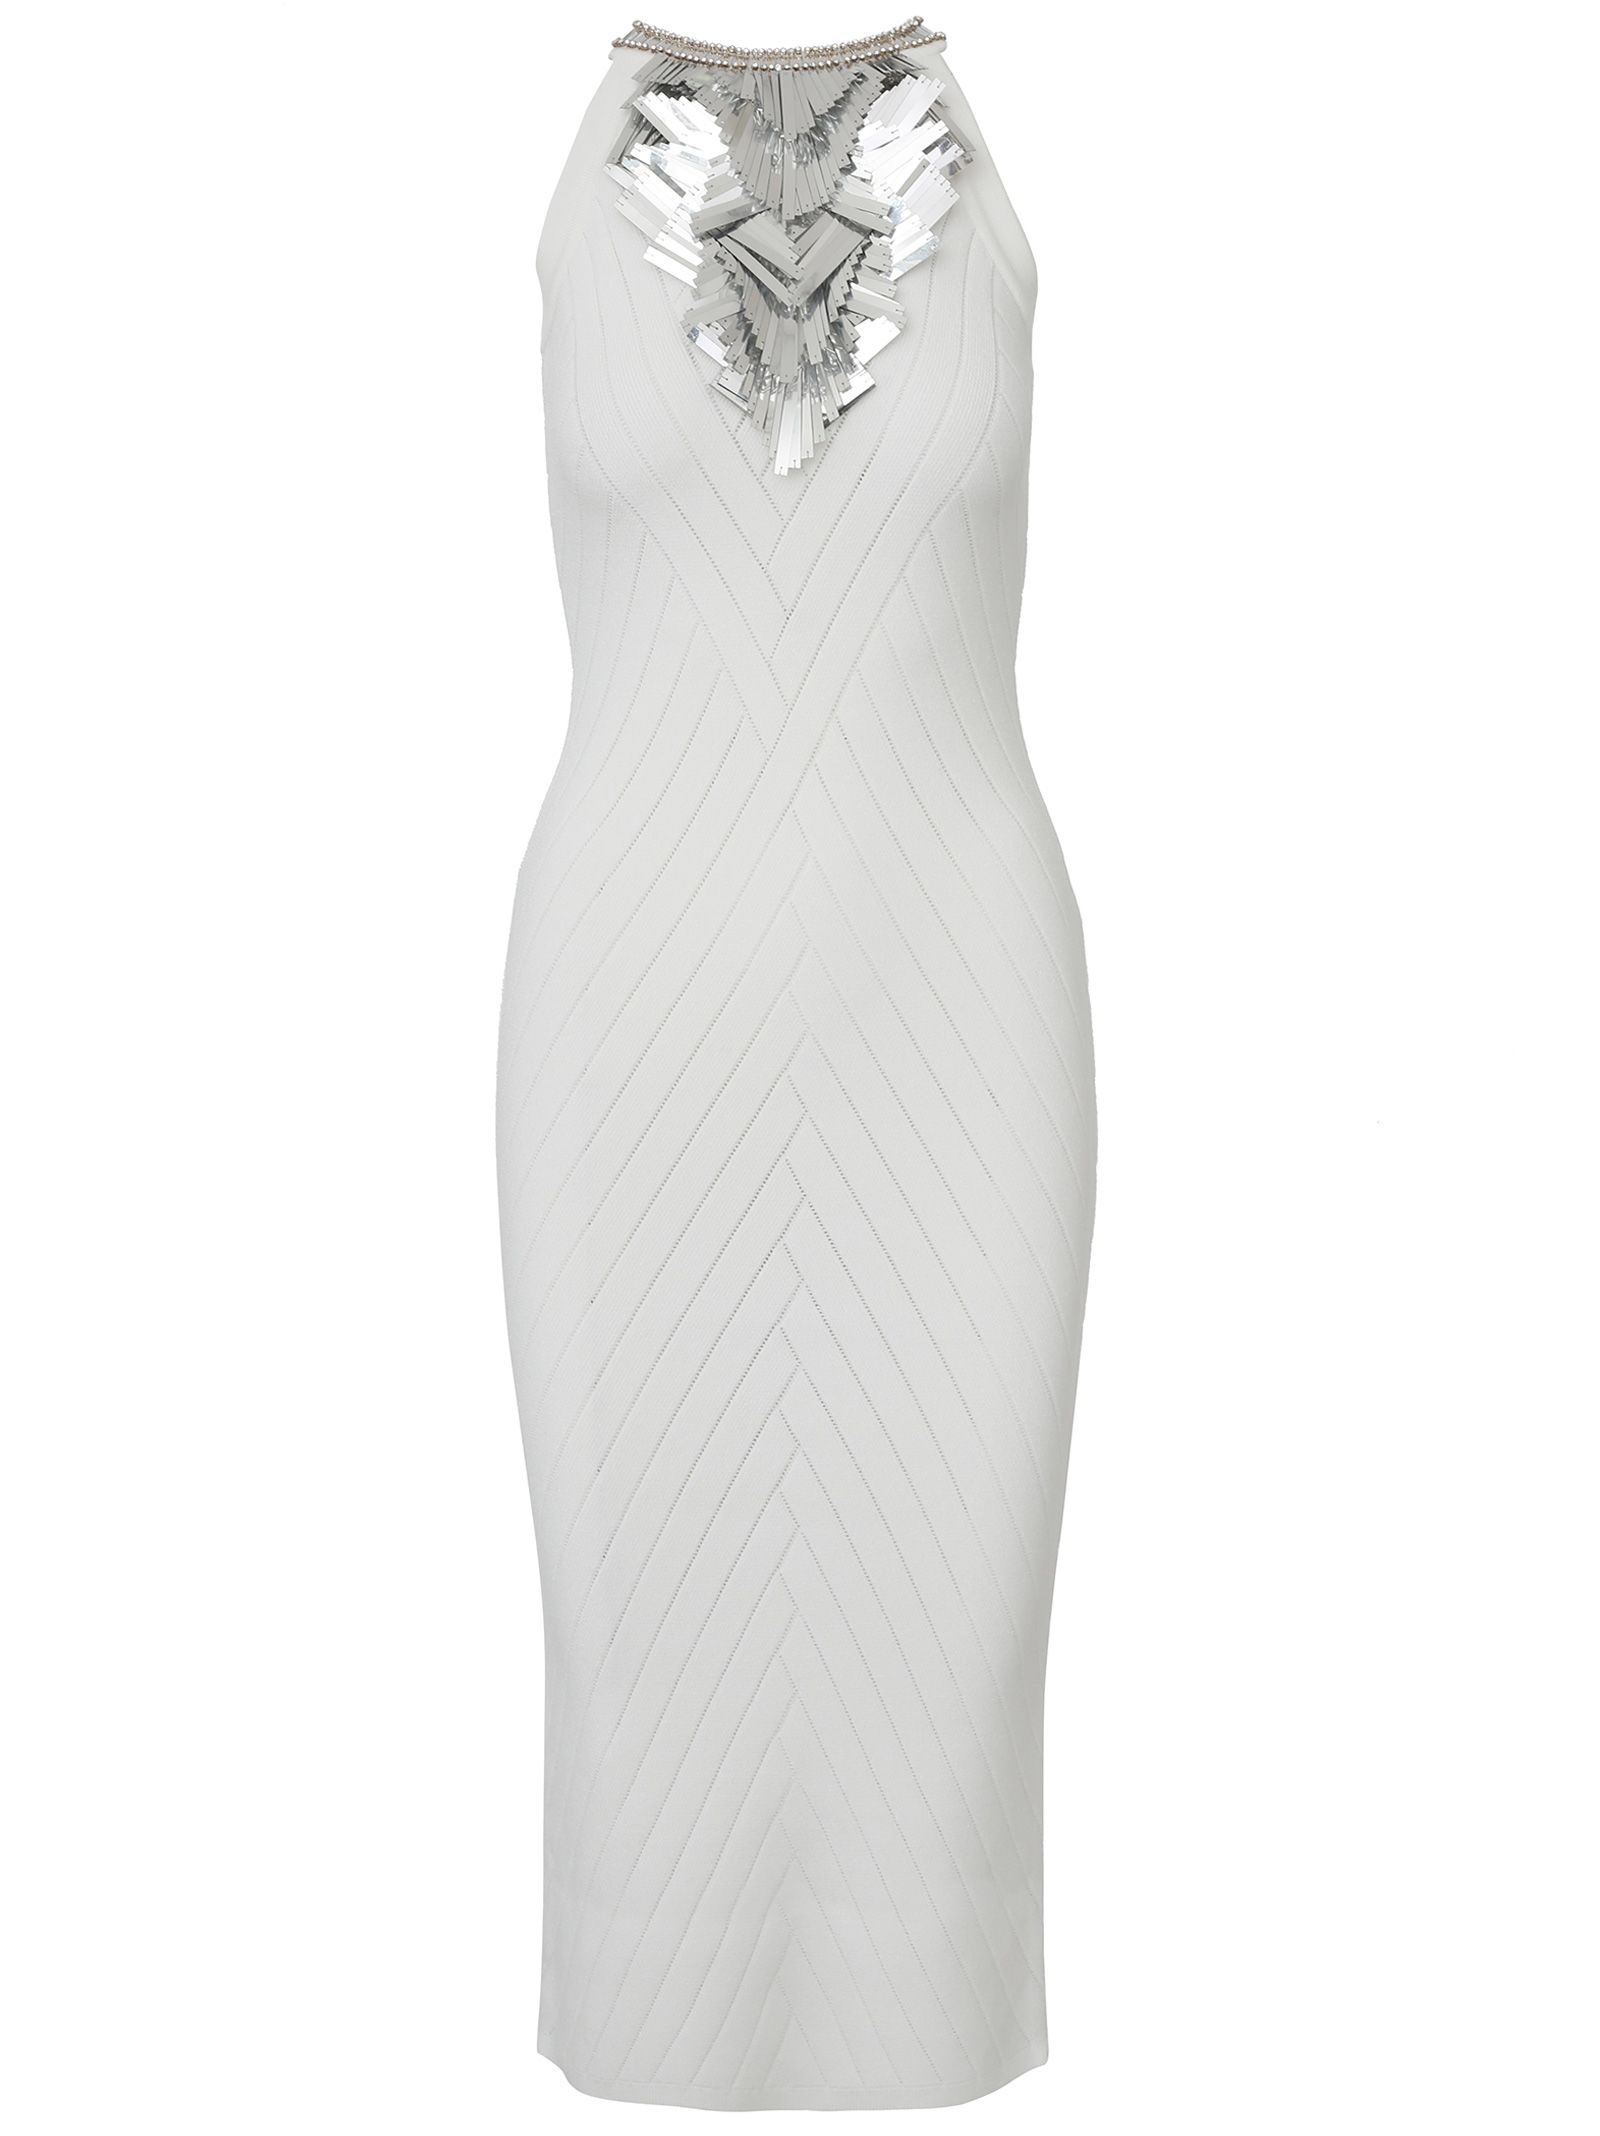 31aaeeee Balmain Balmain Paris Dress - White - 10933800 | italist